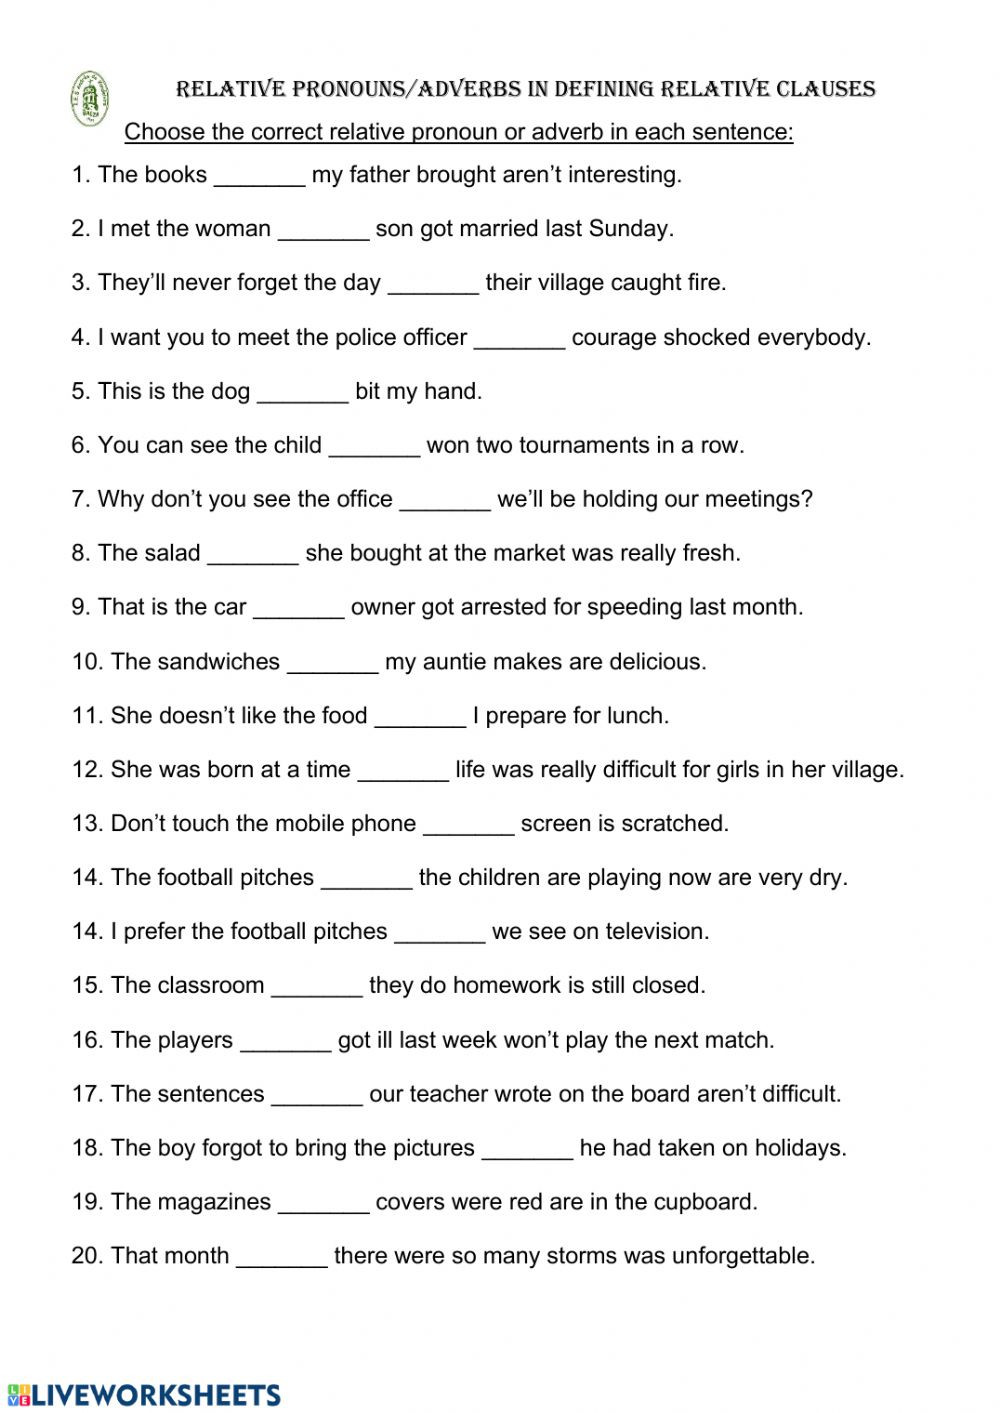 Relative Pronouns Worksheet Grade 4 Relative Pronouns Adverbs Interactive Worksheet